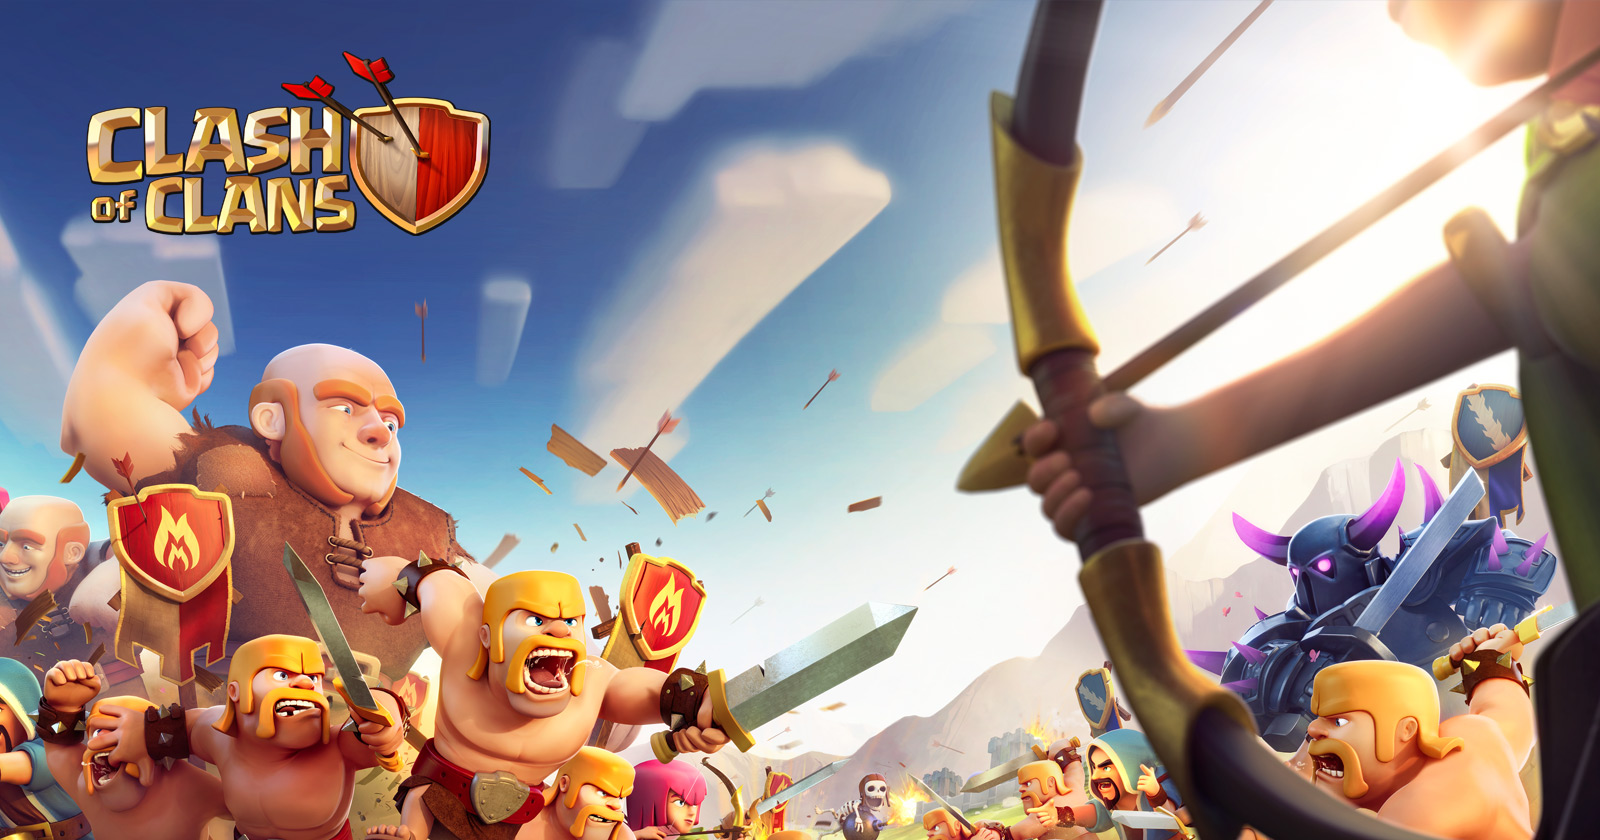 Clash of clans Hack unlimited Gems